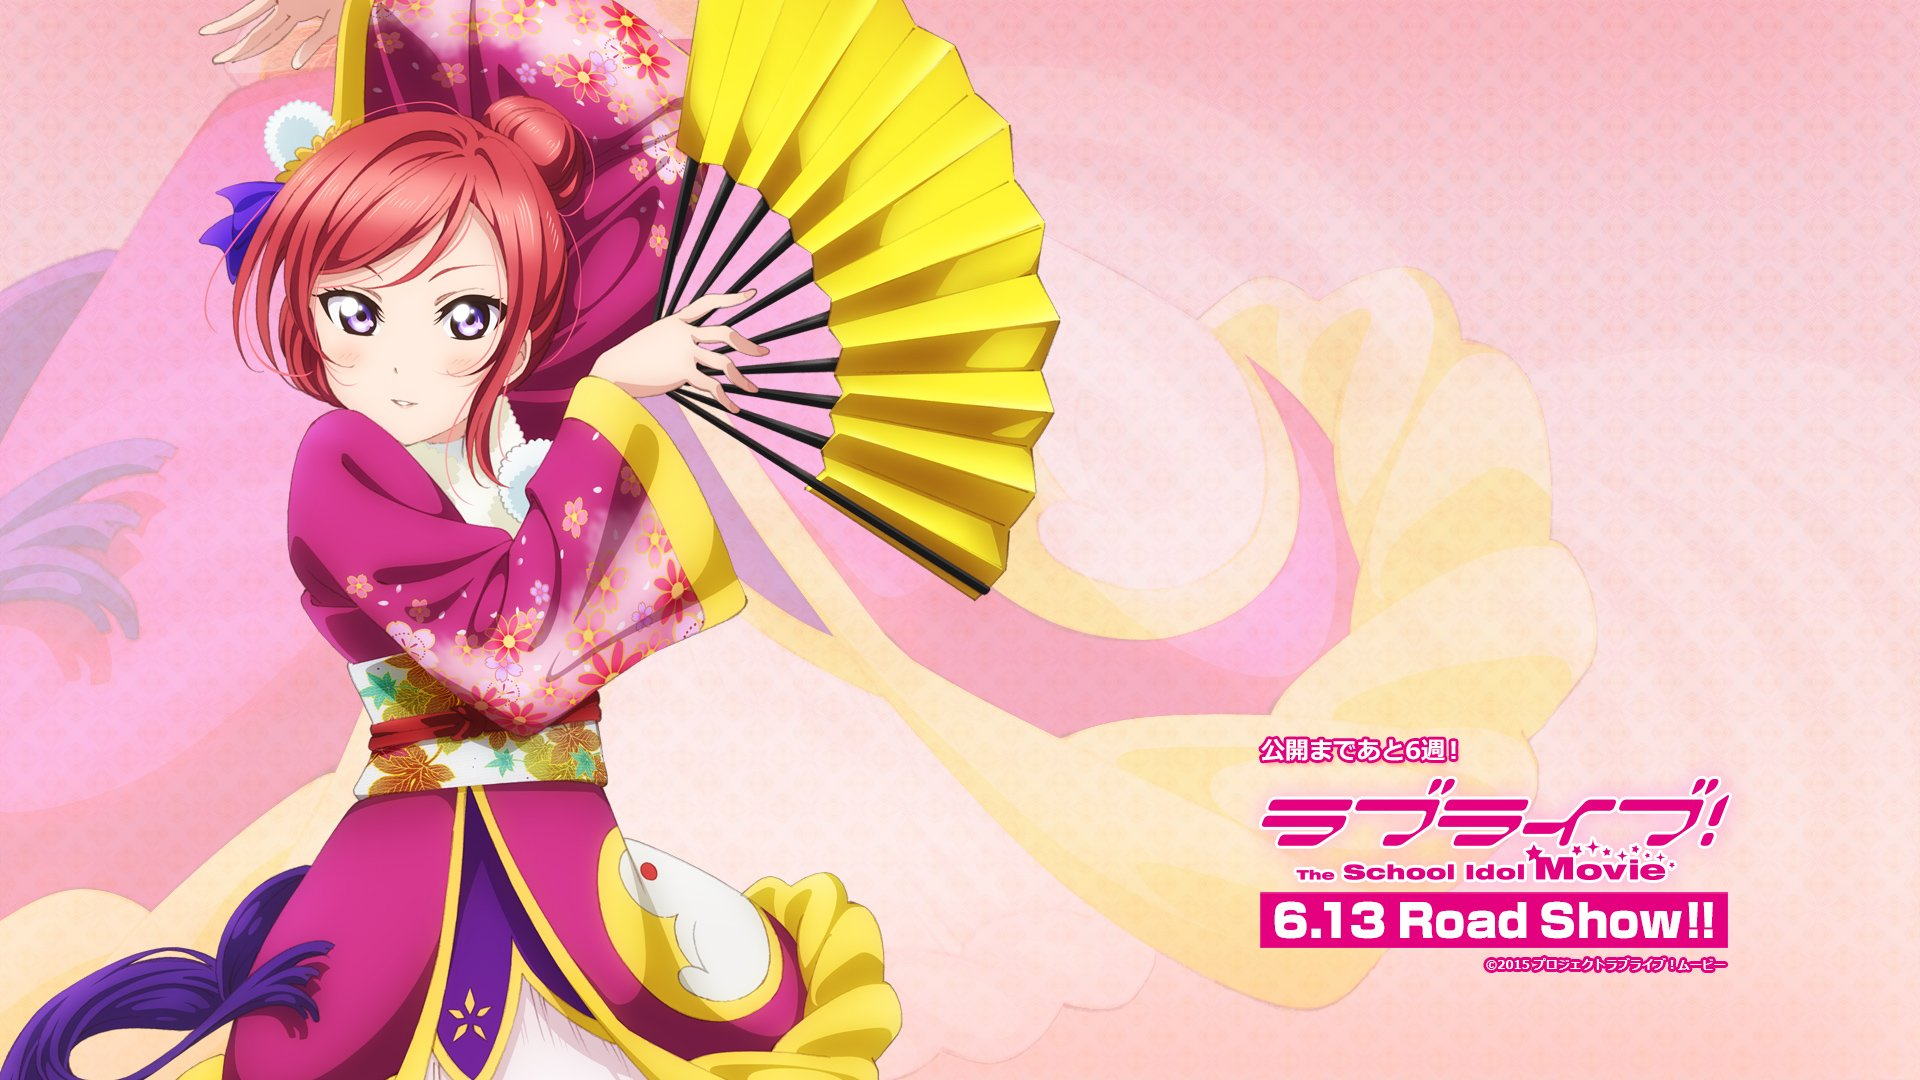 Love Live Iphone Wallpaper Maki : Fan japanese clothes love live! school idol project ...